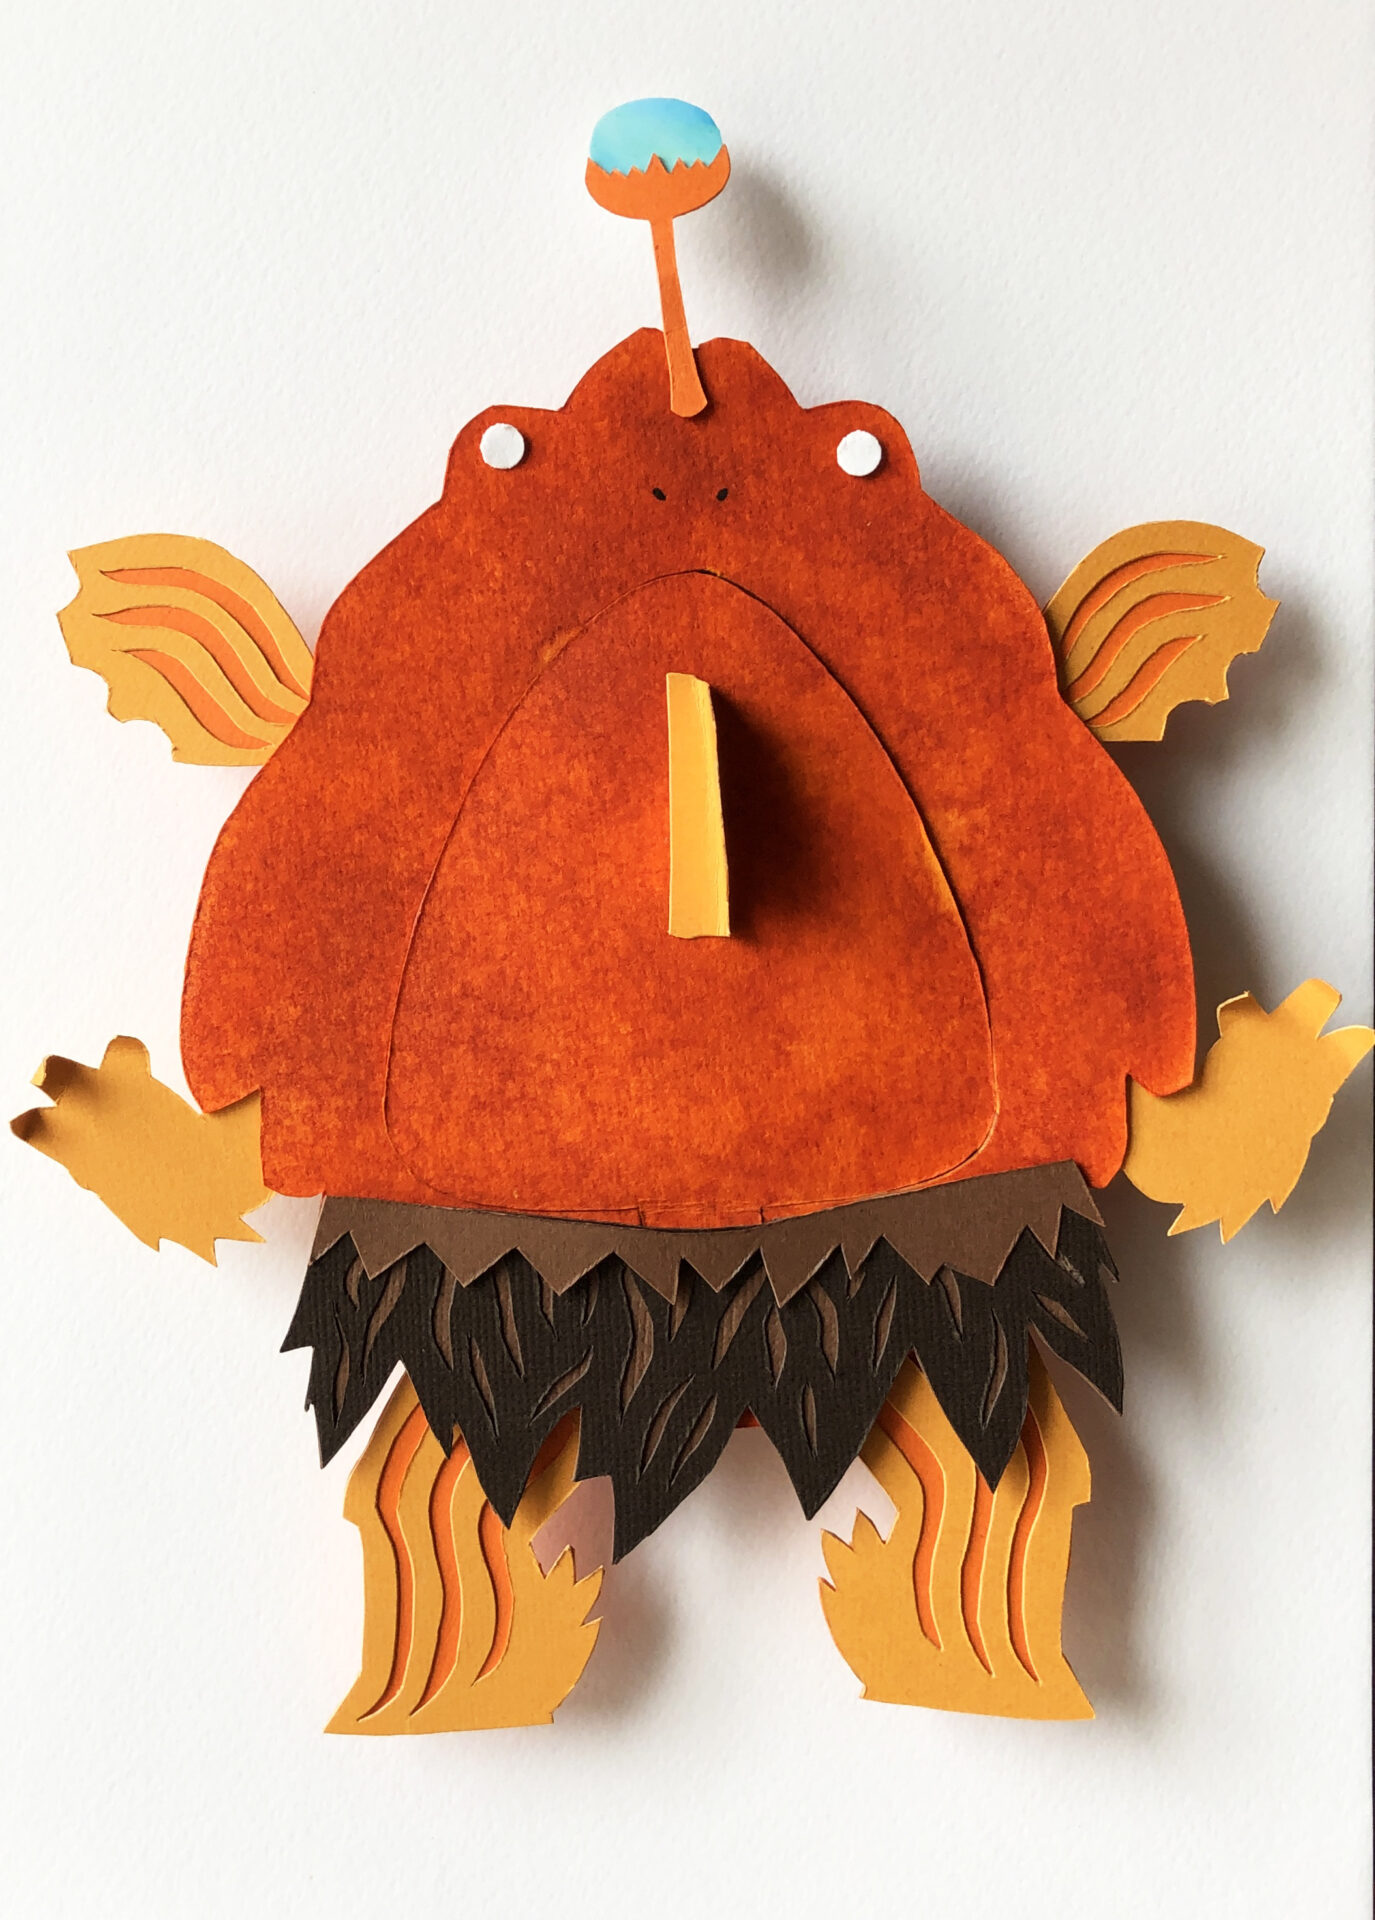 Angler Fish By Manny Sison Showing In Works On Paper